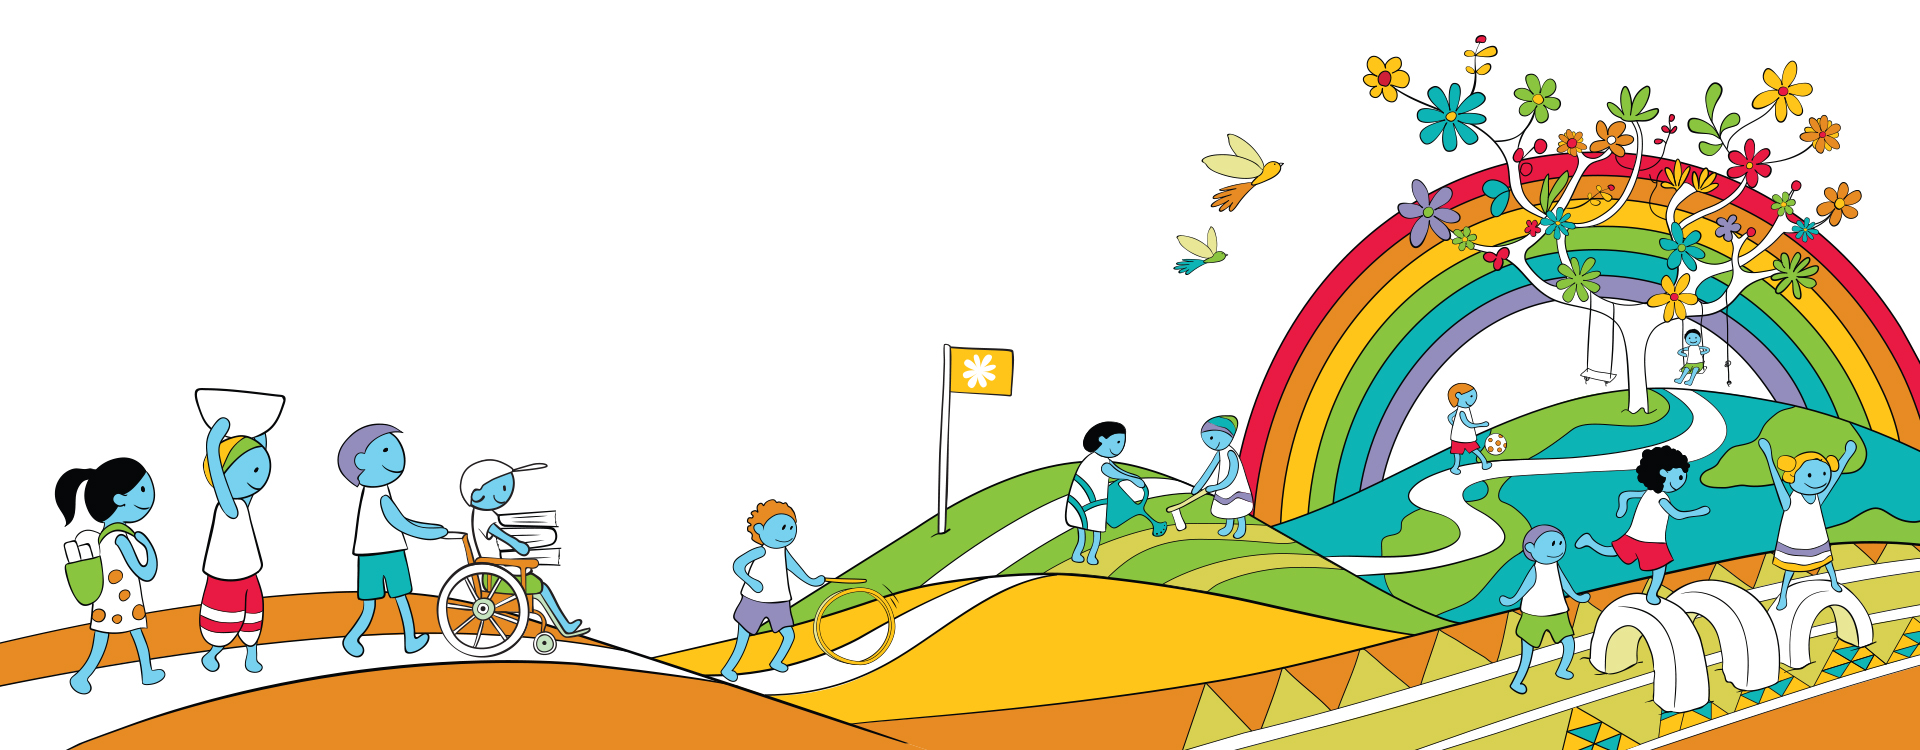 Colourful illustration depicting children walking and playing